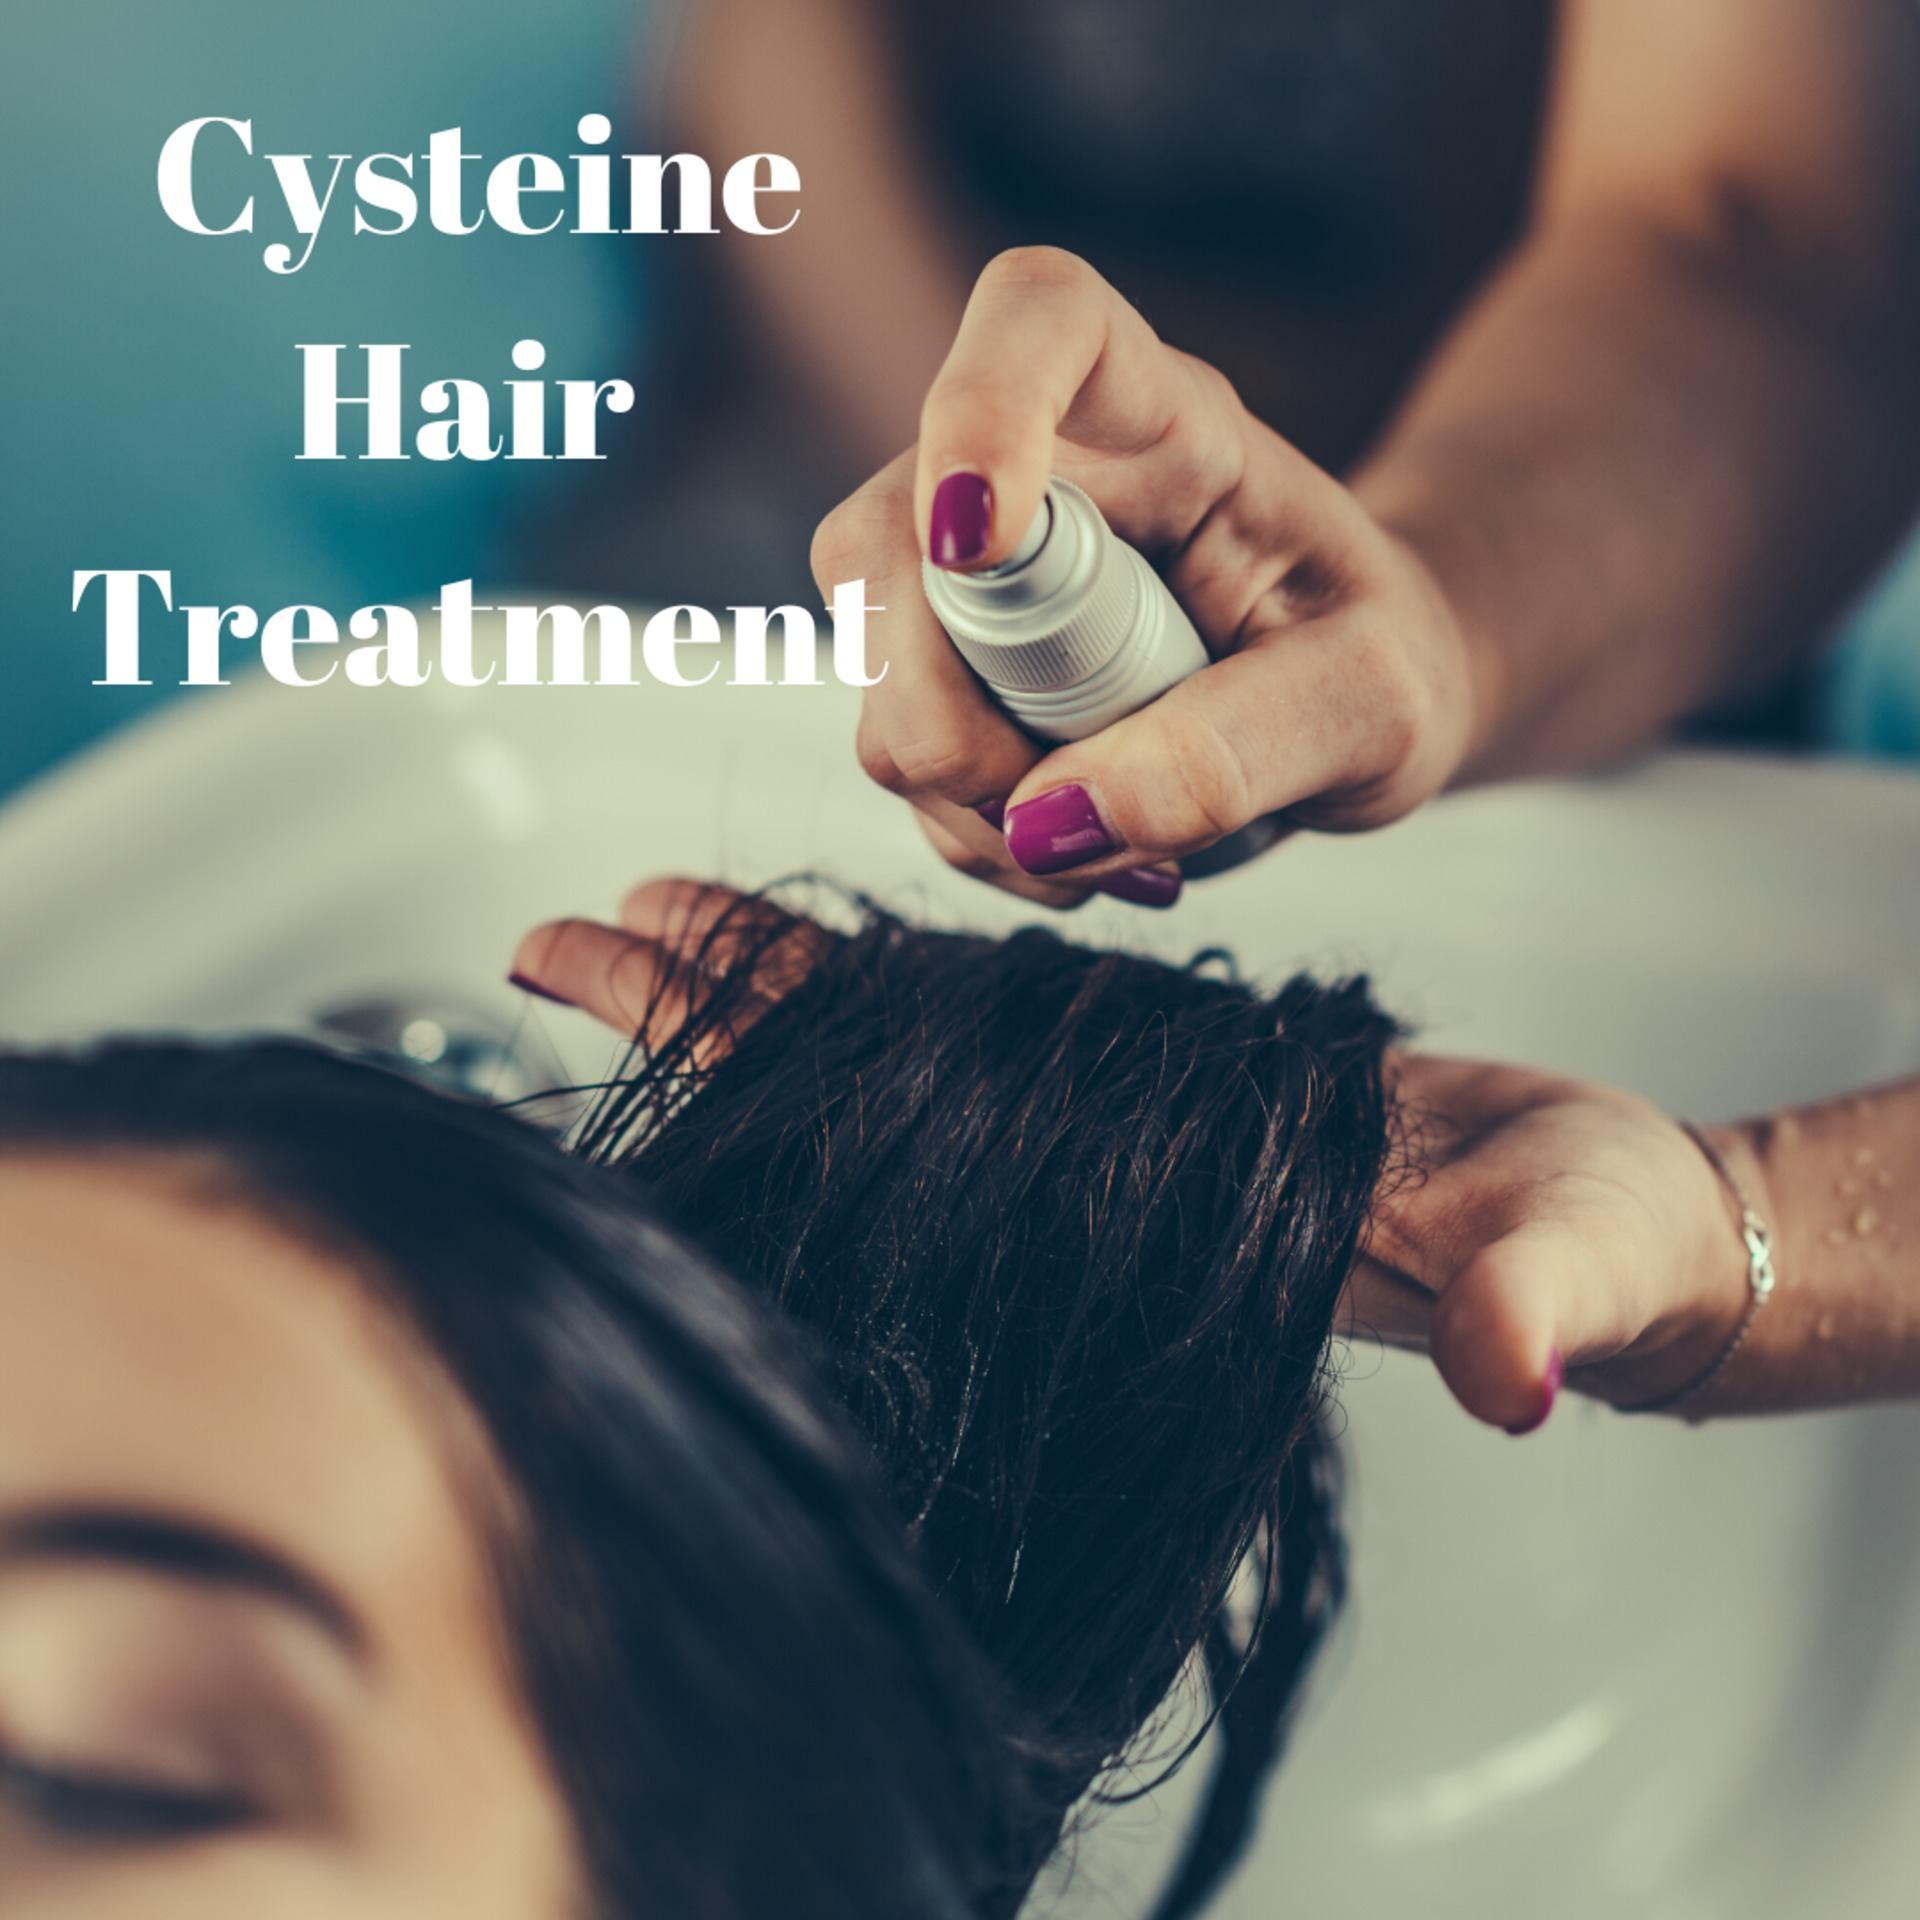 CYSTEINE HAIR TREATMENT image